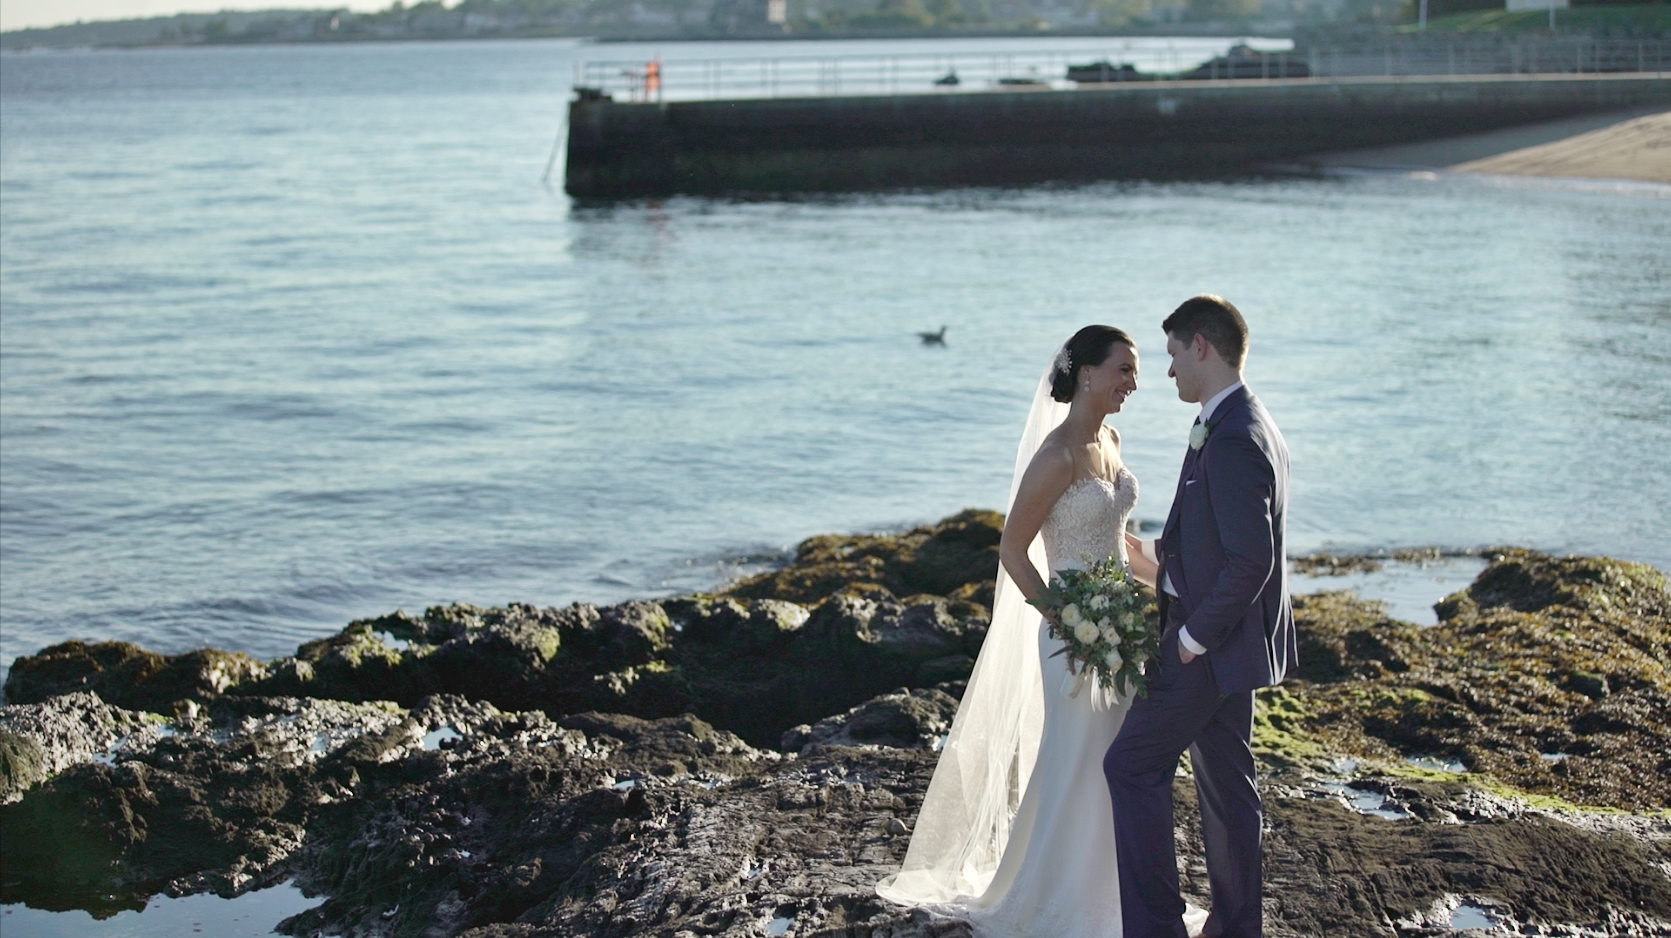 Kerry + Andrew | Larchmont, New York | Larchmont Shore Club Wedding